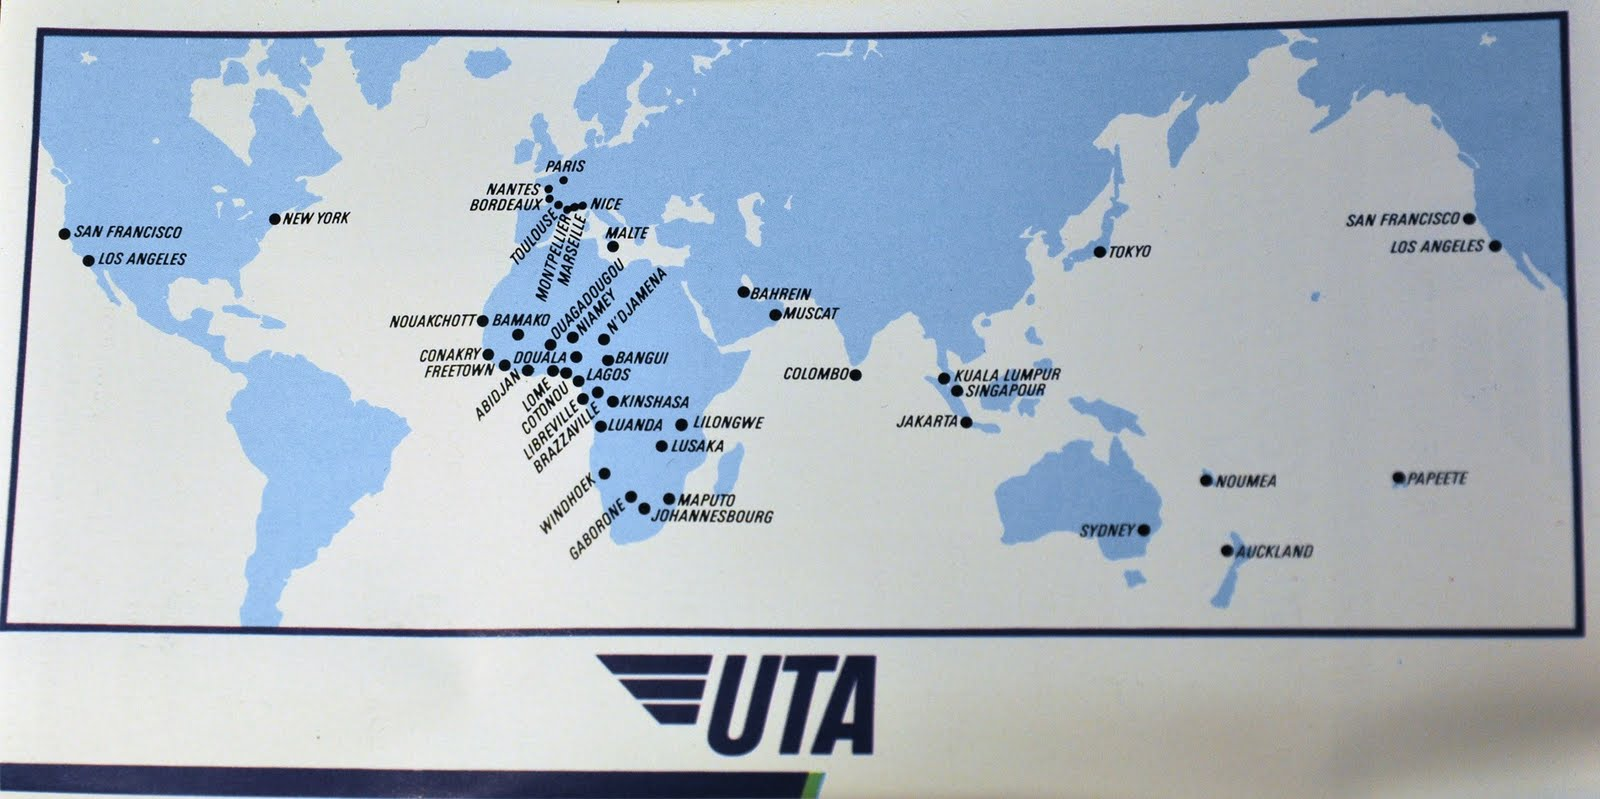 The Timetablist: UTA French Airlines: Worldwide Network, 1989